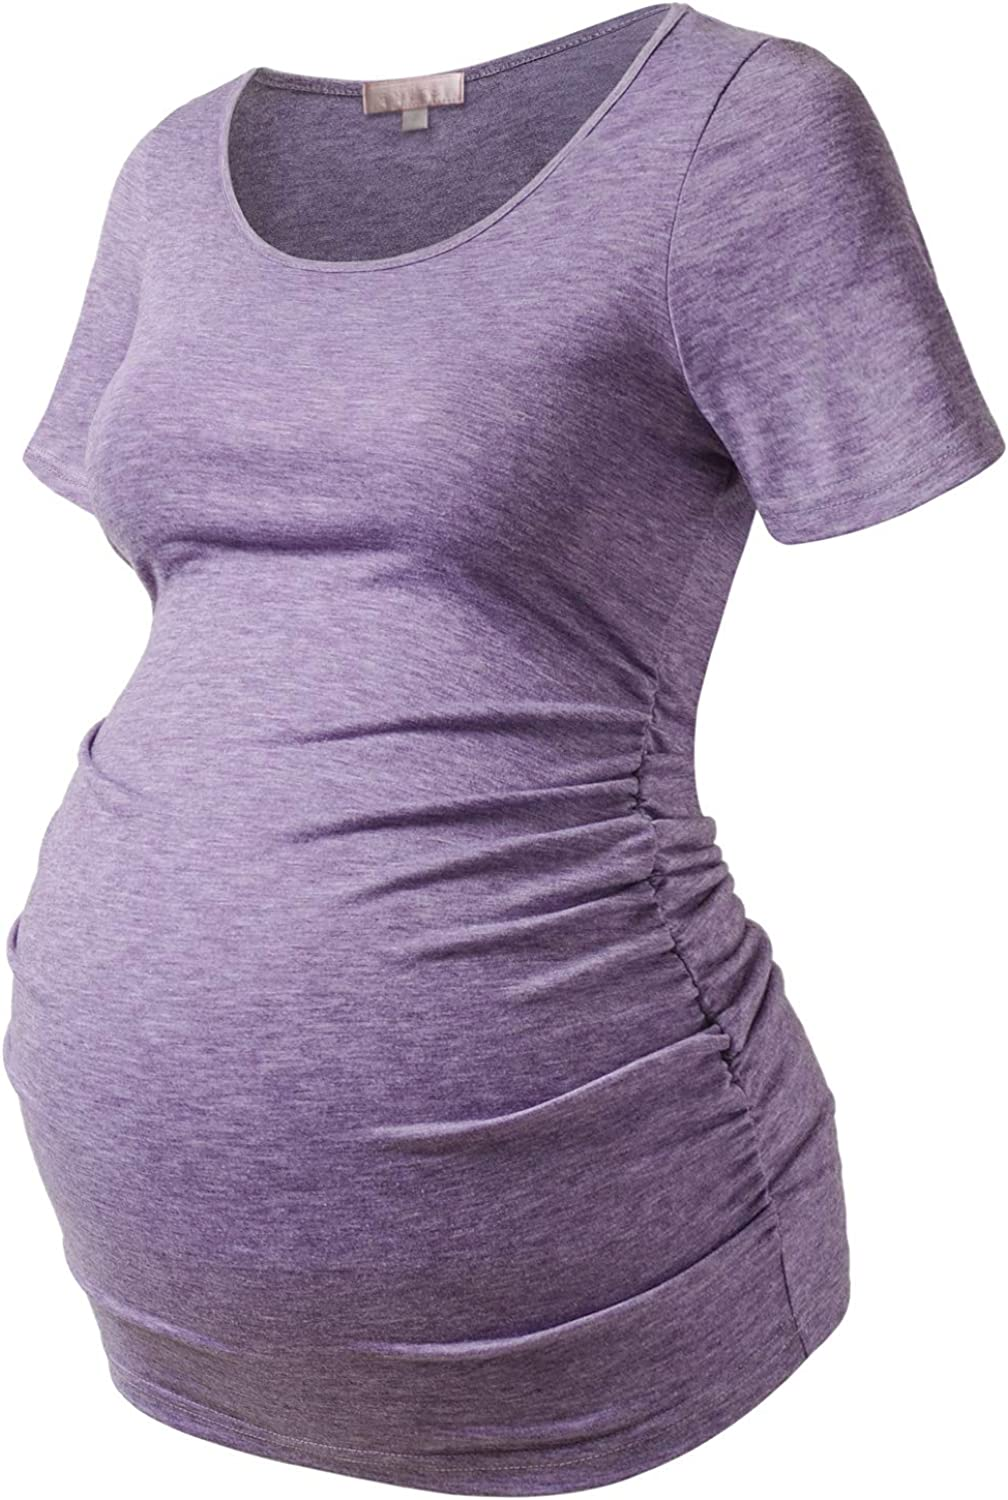 Bhome Maternity Shirt Short Quantity limited Sleeve Pregna Layering Tshirt Summer 2021 autumn and winter new